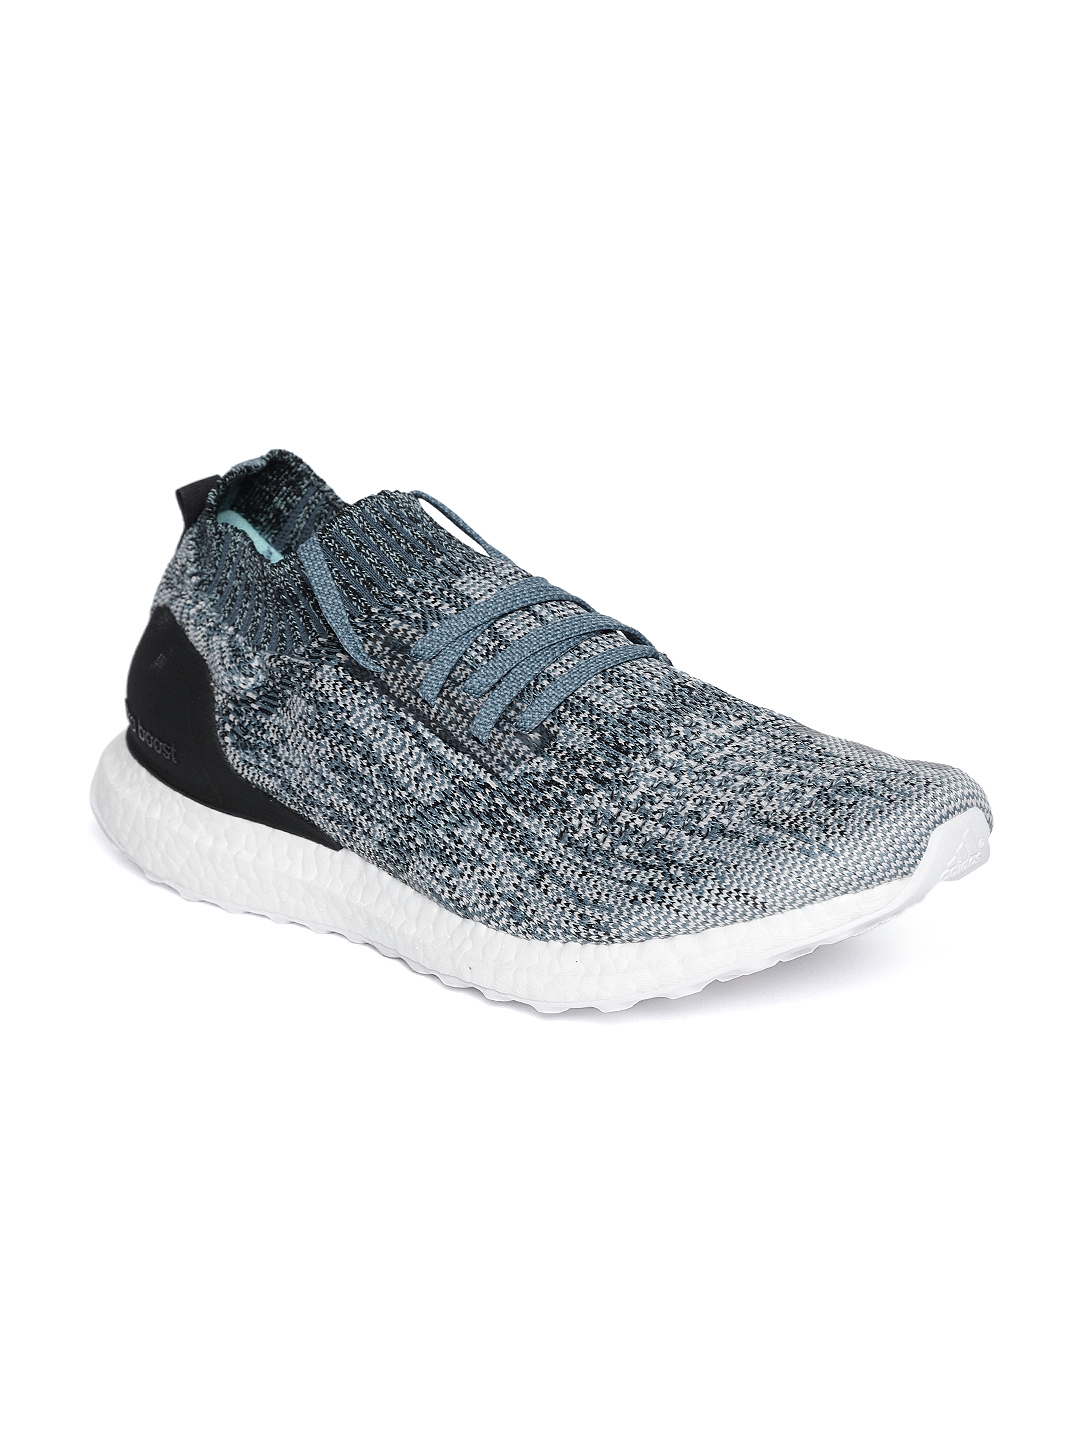 ad1f1fb17 Buy ADIDAS Men Blue   Grey Ultraboost Uncaged Parley Running Shoes ...